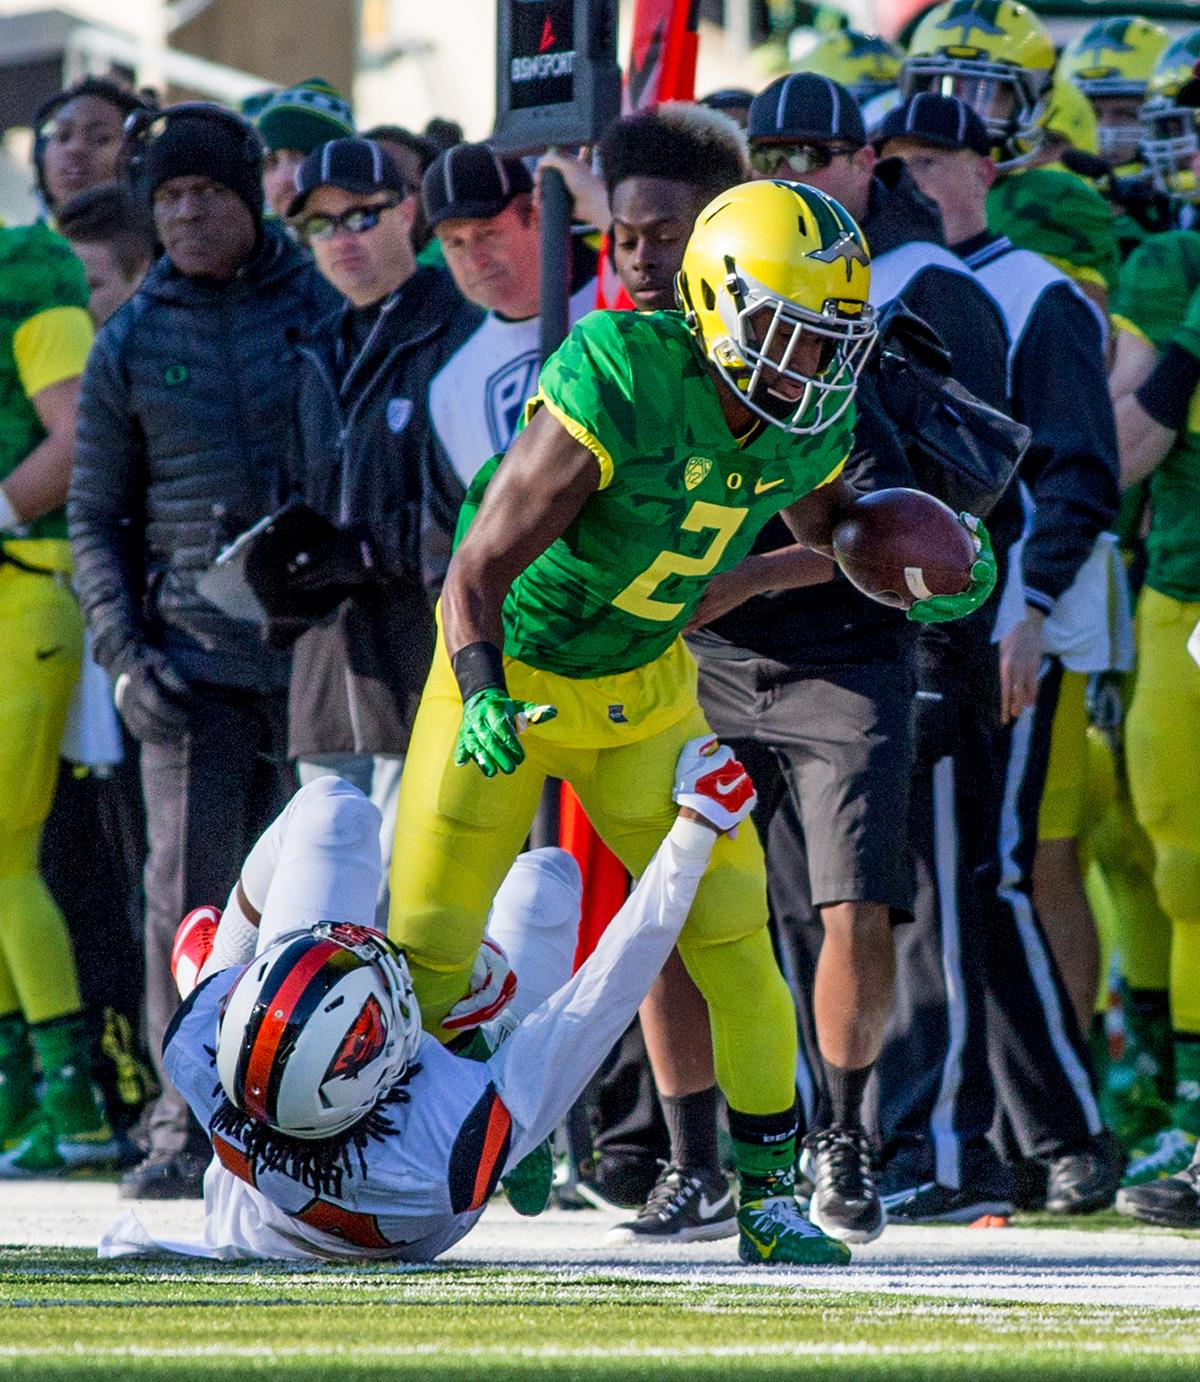 Oregon Ducks Braylon Addison (#2) drags the Oregon State Beavers defender in the Civil War game in Autzen Stadium. At the half the Ducks led the Beavers 31 - 7. Photo by Katie Pietzold, Oregon News Lab